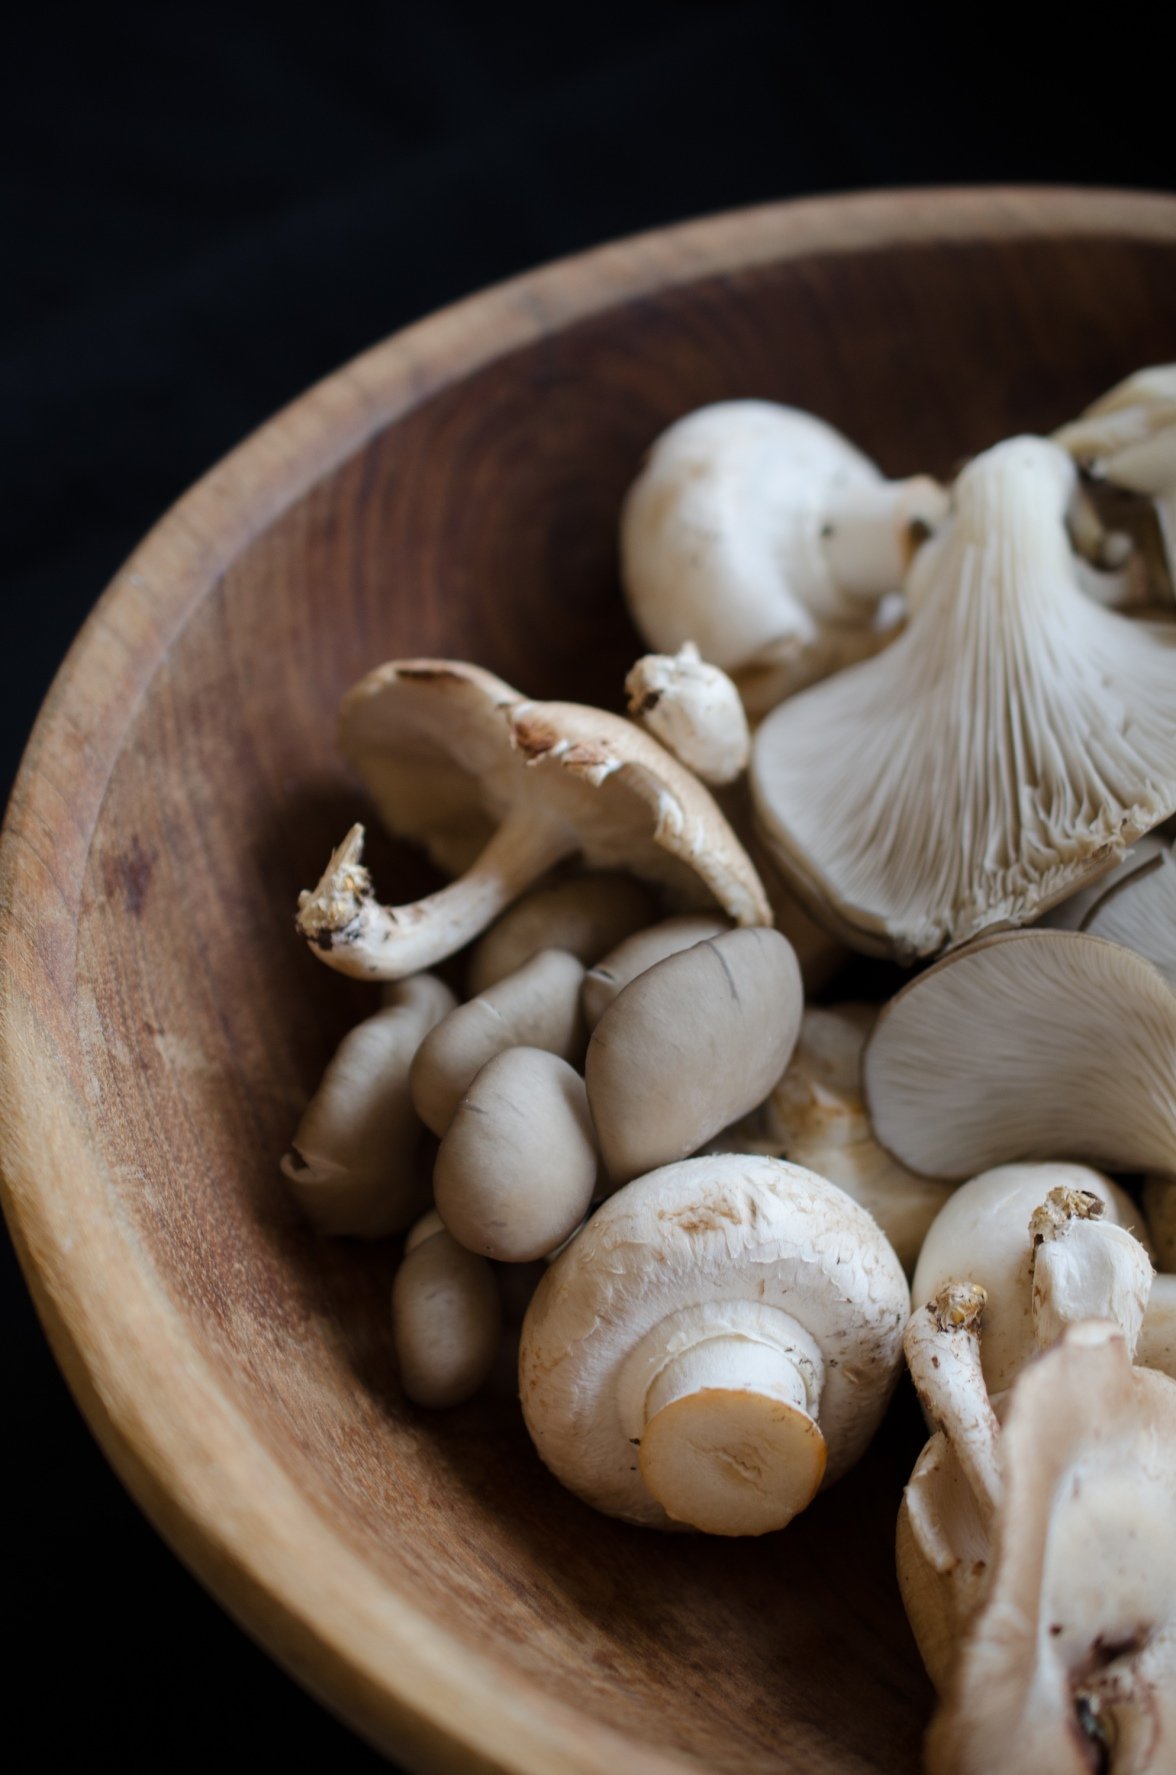 Bowl of mushrooms